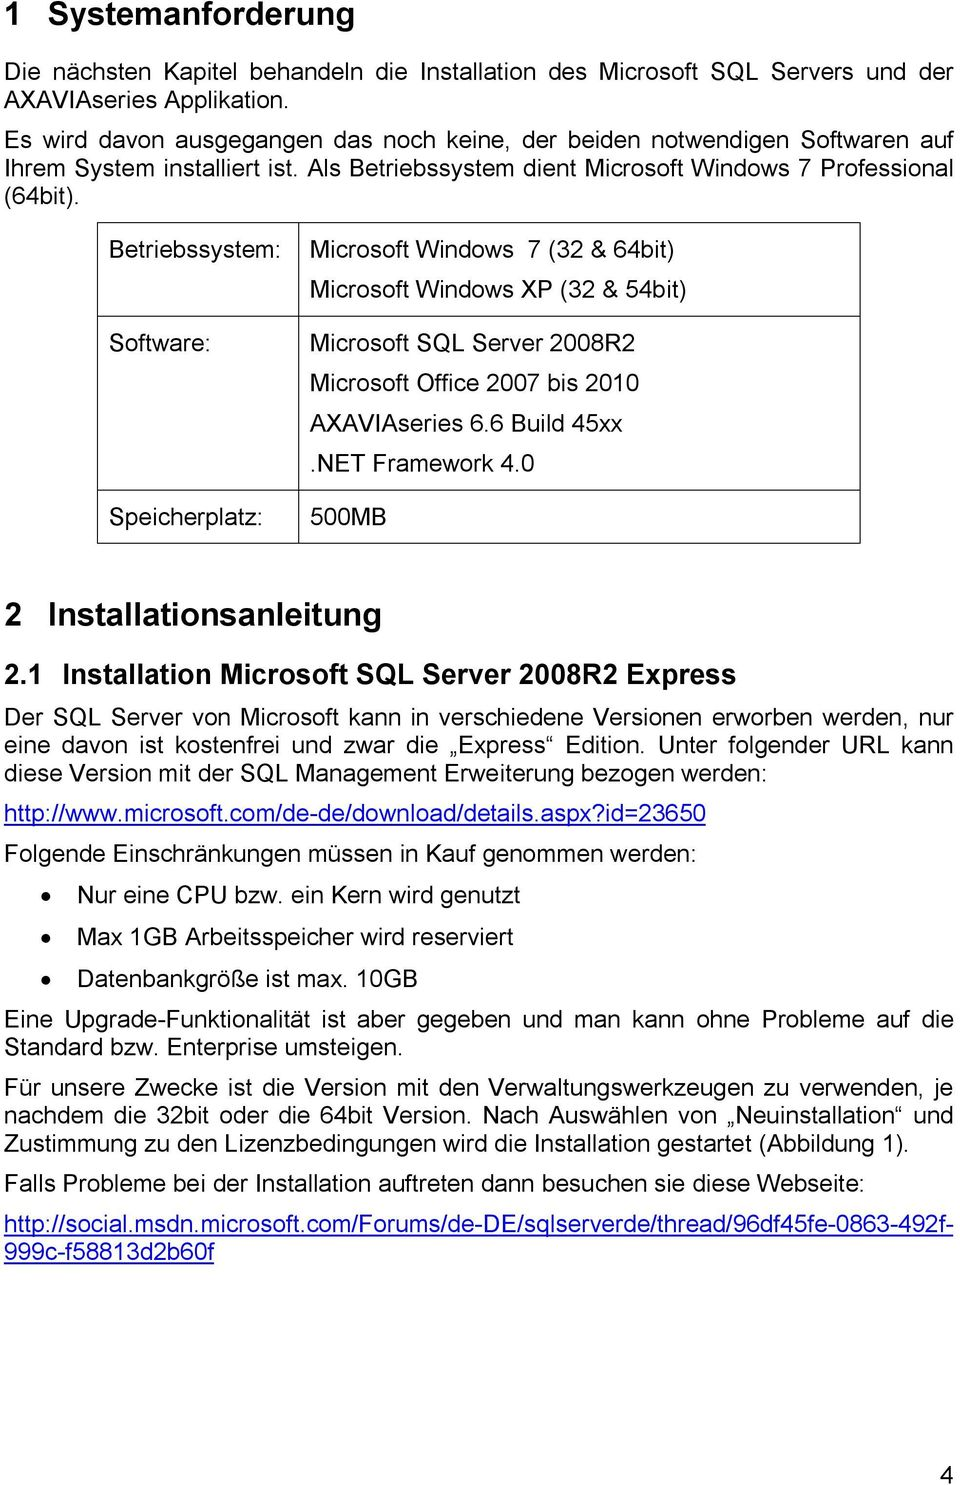 Betriebssystem: Software: Speicherplatz: Microsoft Windows 7 (32 & 64bit) Microsoft Windows XP (32 & 54bit) Microsoft SQL Server 2008R2 Microsoft Office 2007 bis 2010 AXAVIAseries 6.6 Build 45xx.